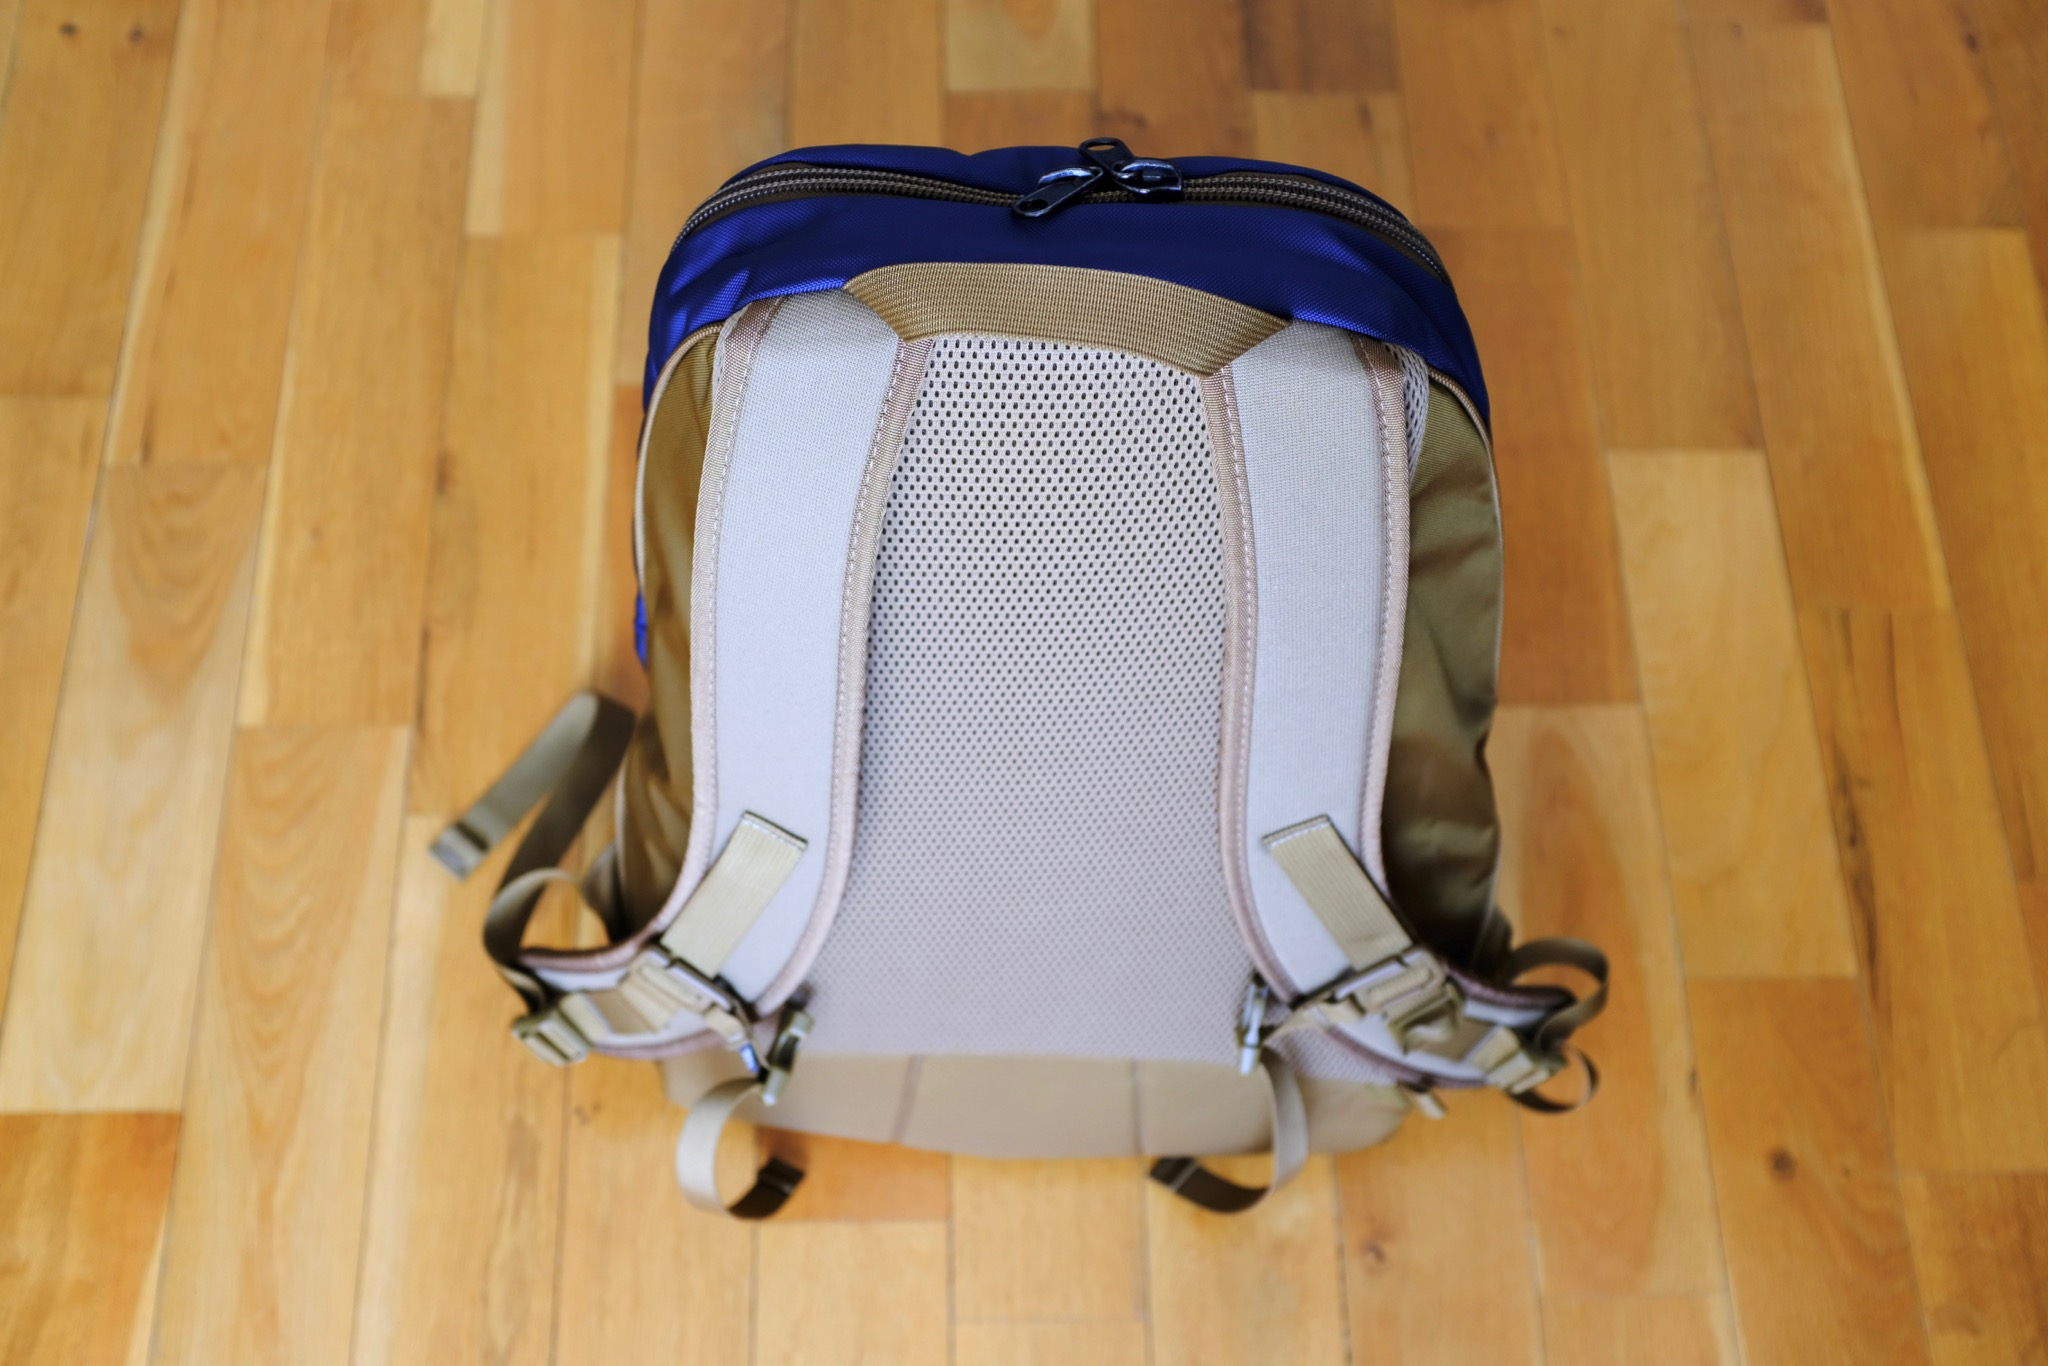 Both the shoulder strap and back panel are made out of closed-cell foam